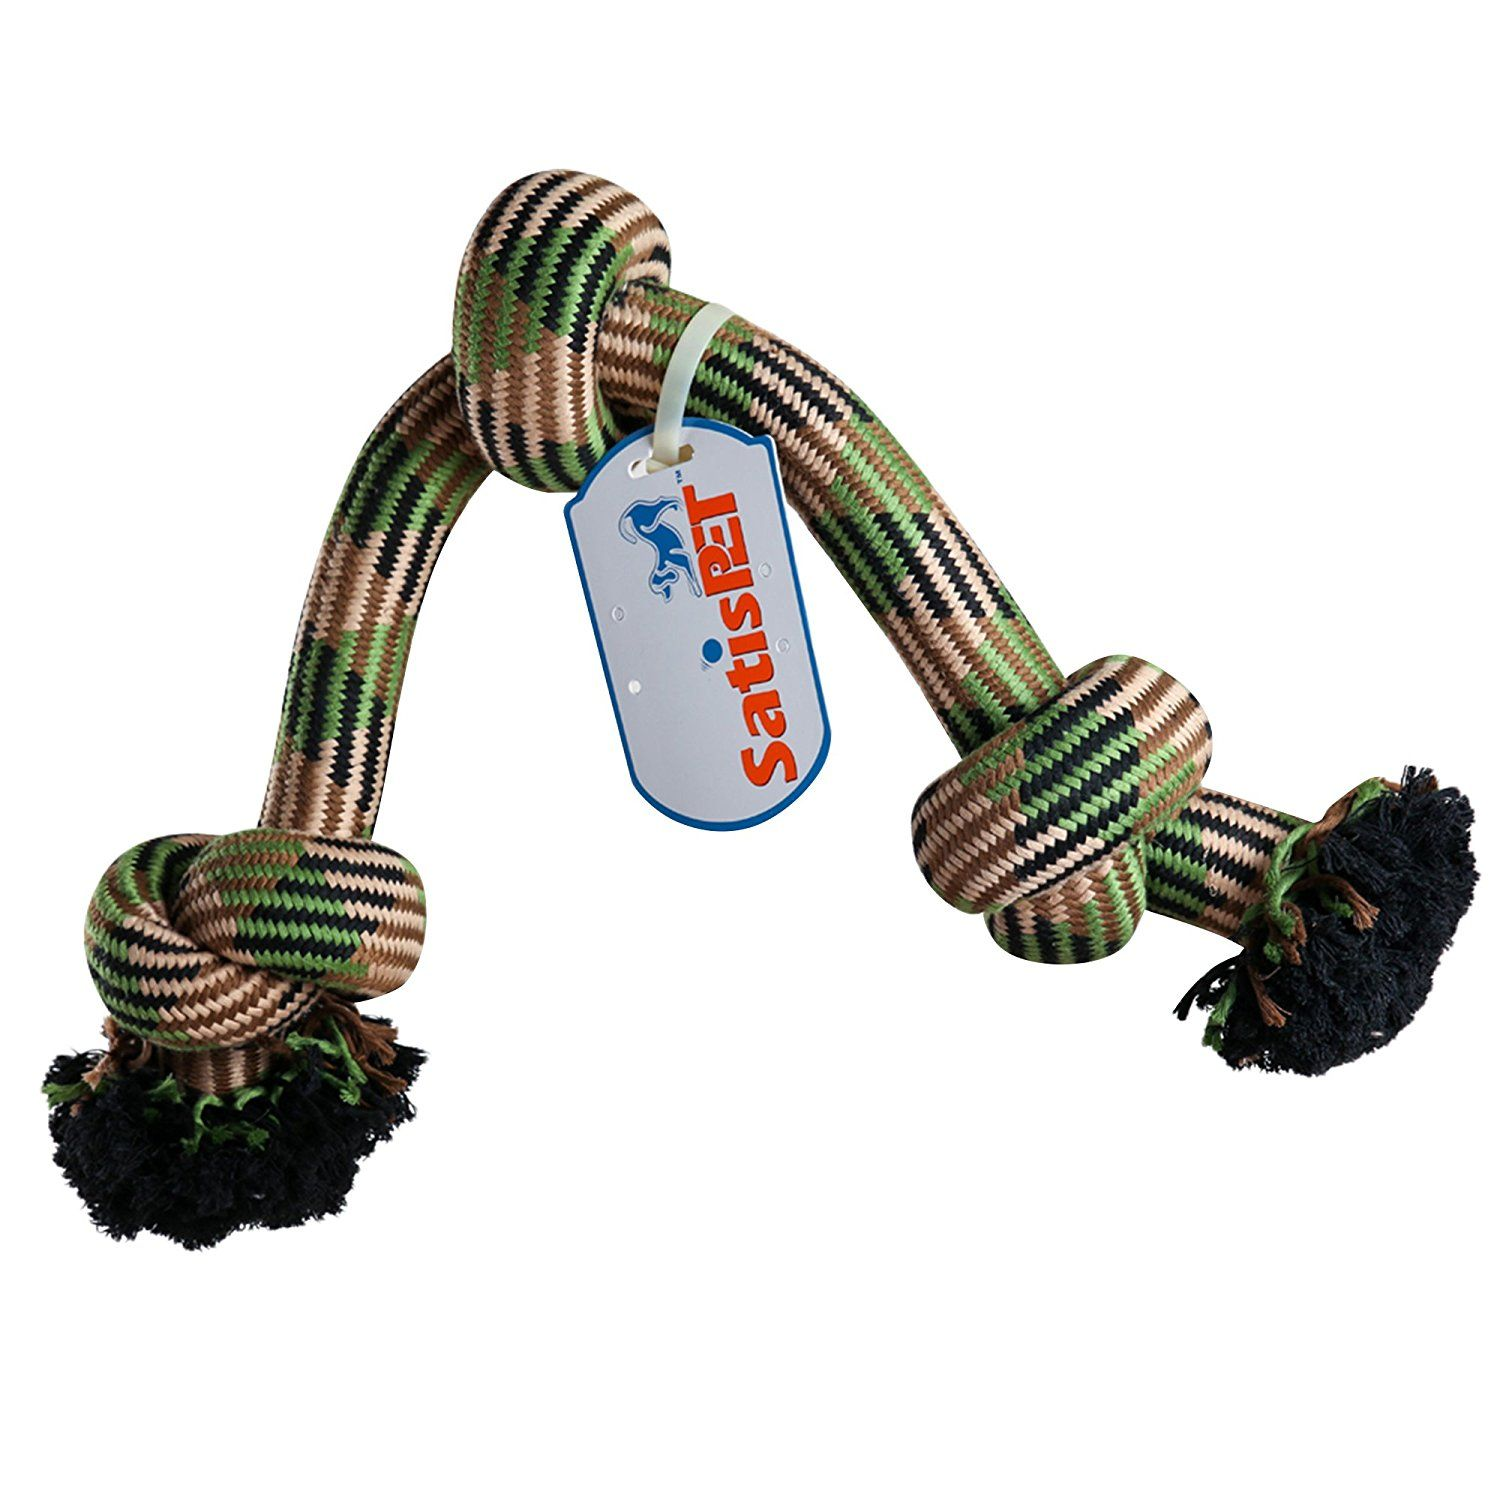 SatisPet Dog Toys 31 Inch 5Lbs no 1 Jumbo Durable Chew Rope